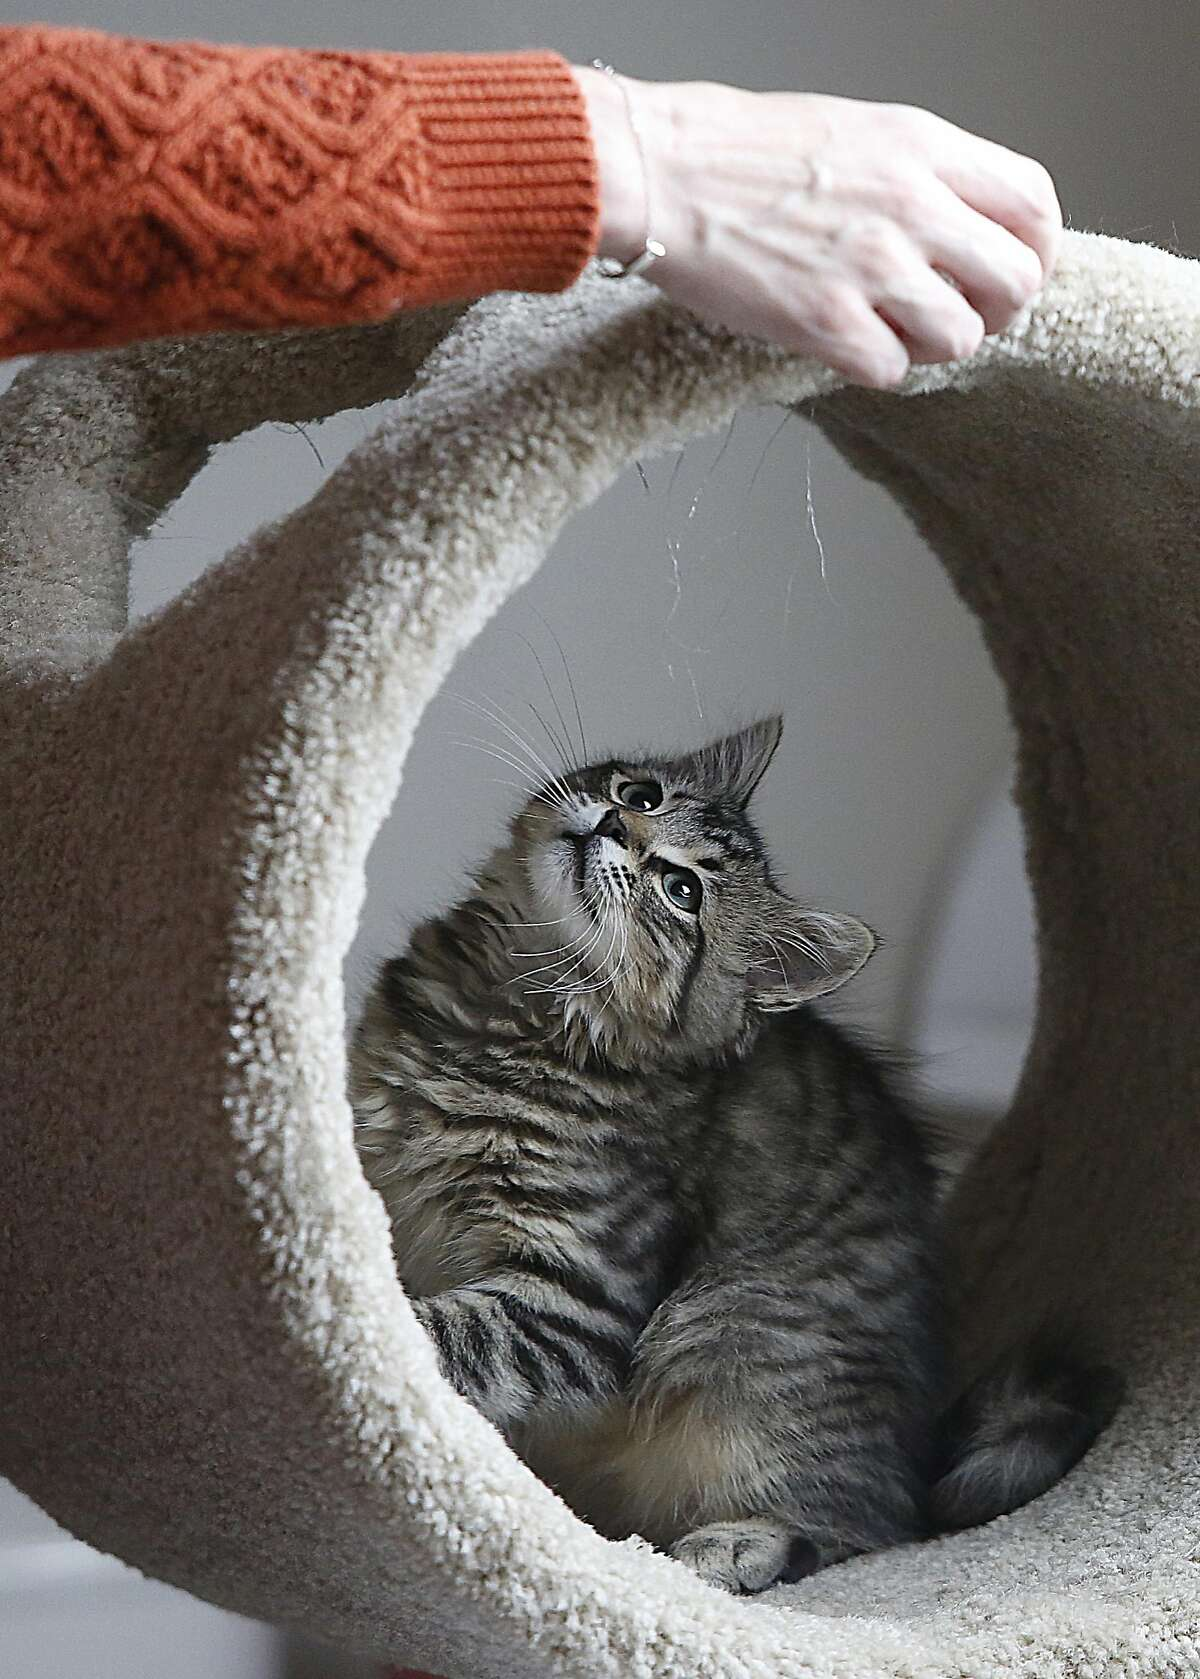 Owner Amber Grace of Saving Grace Kitten Shelter for at-risk, special need kittens, plays with Chevy on Wednesday, July 20, 2016, in San Francisco, Calif. Rents for the shelter have become to high to afford.